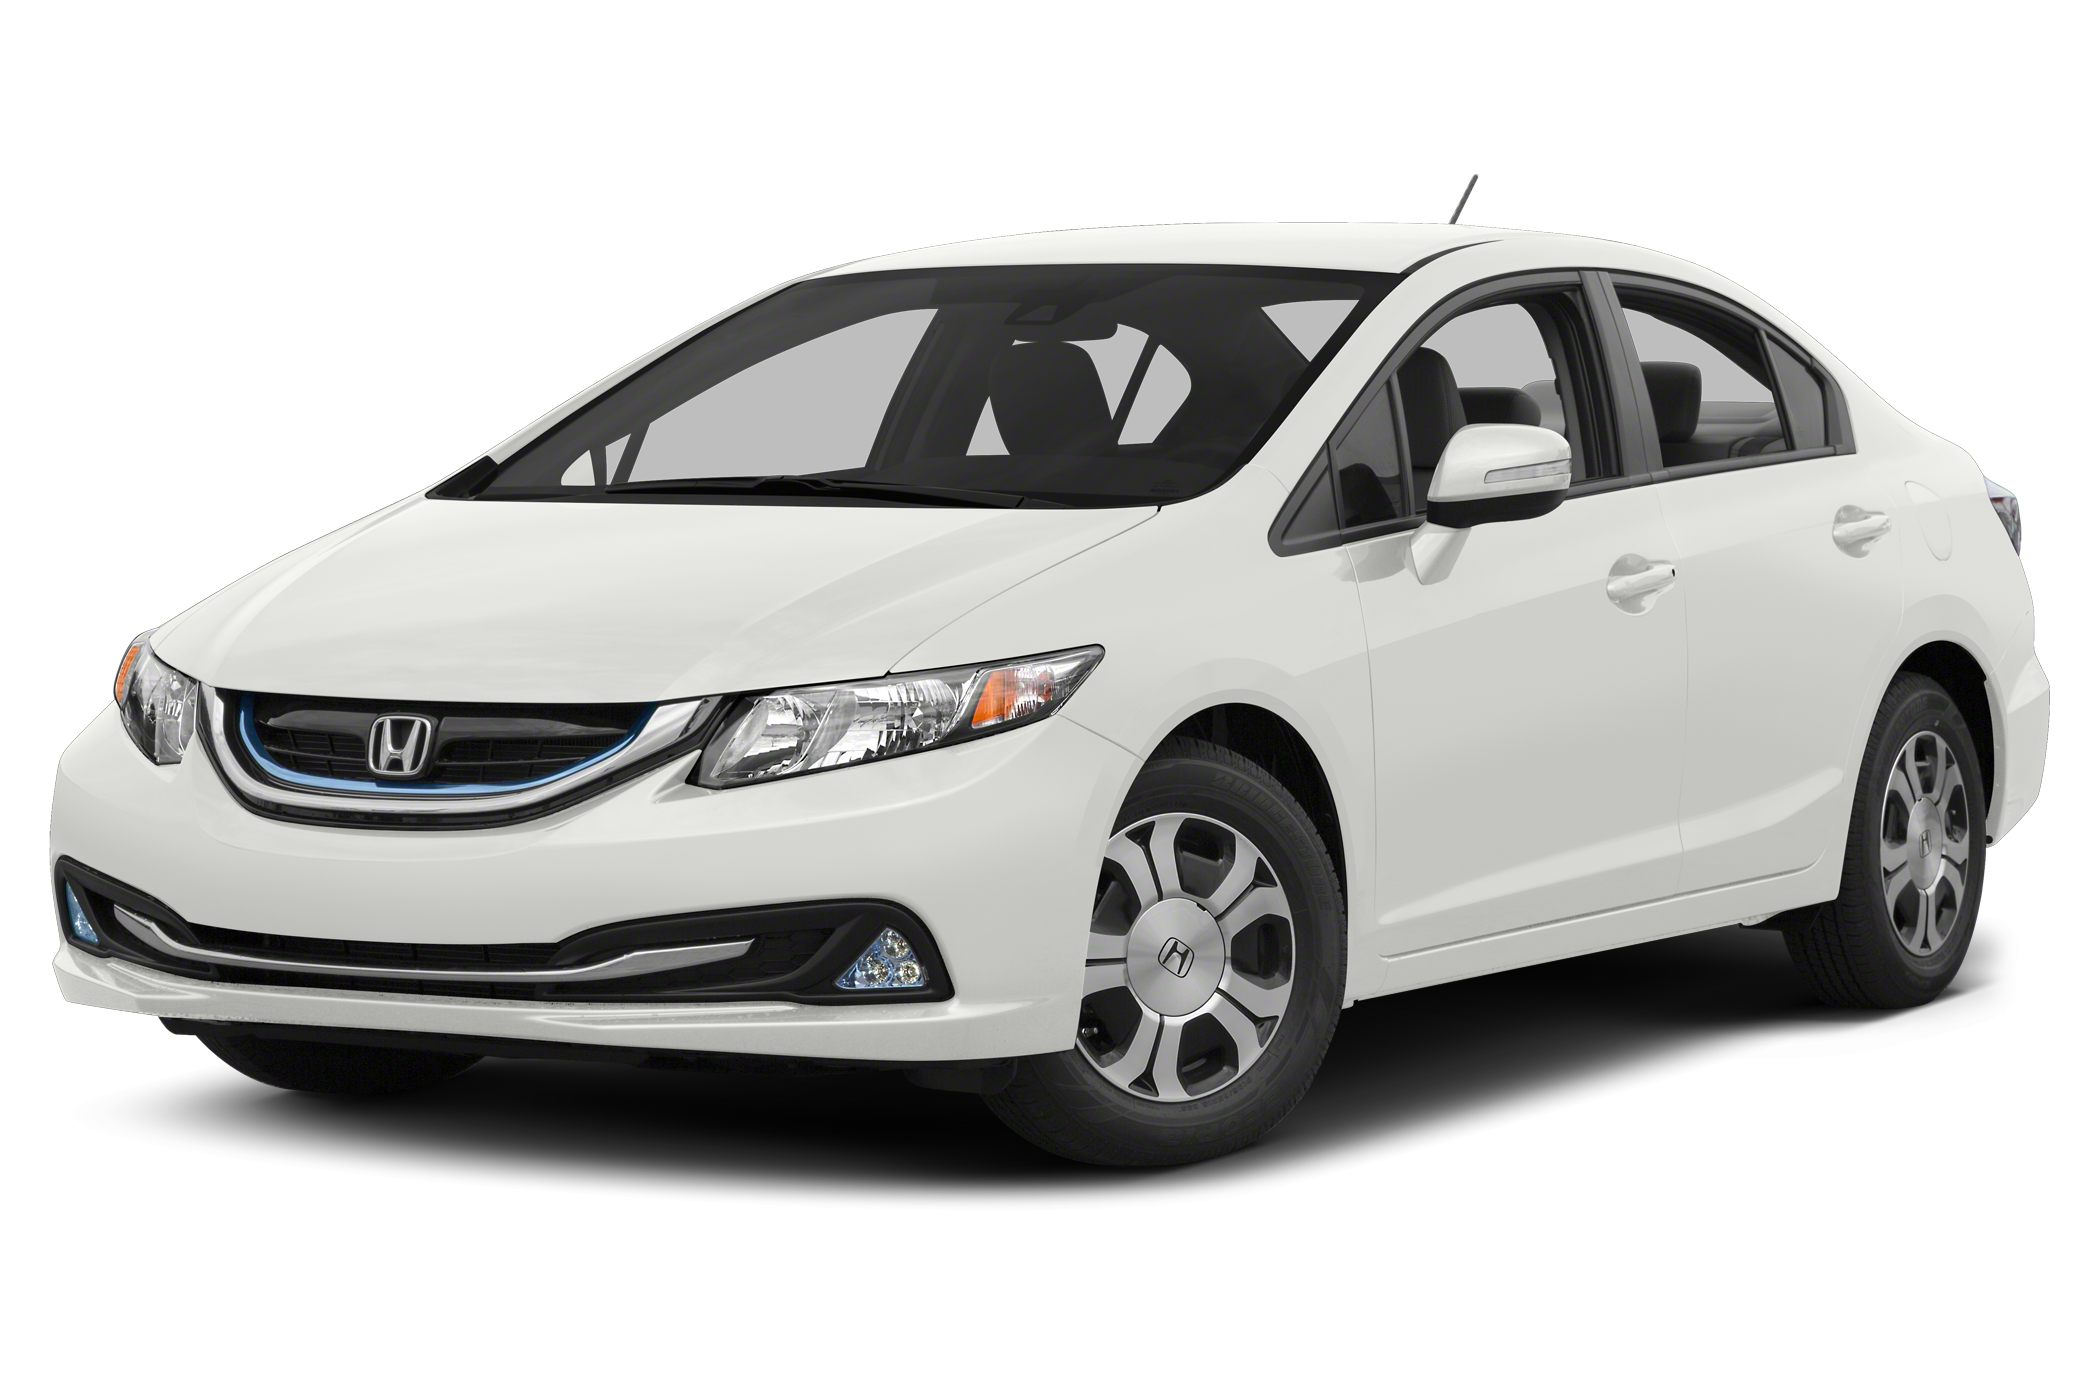 2015 Honda Civic Hybrid Base Sedan for sale in Sioux Falls for $26,921 with 0 miles